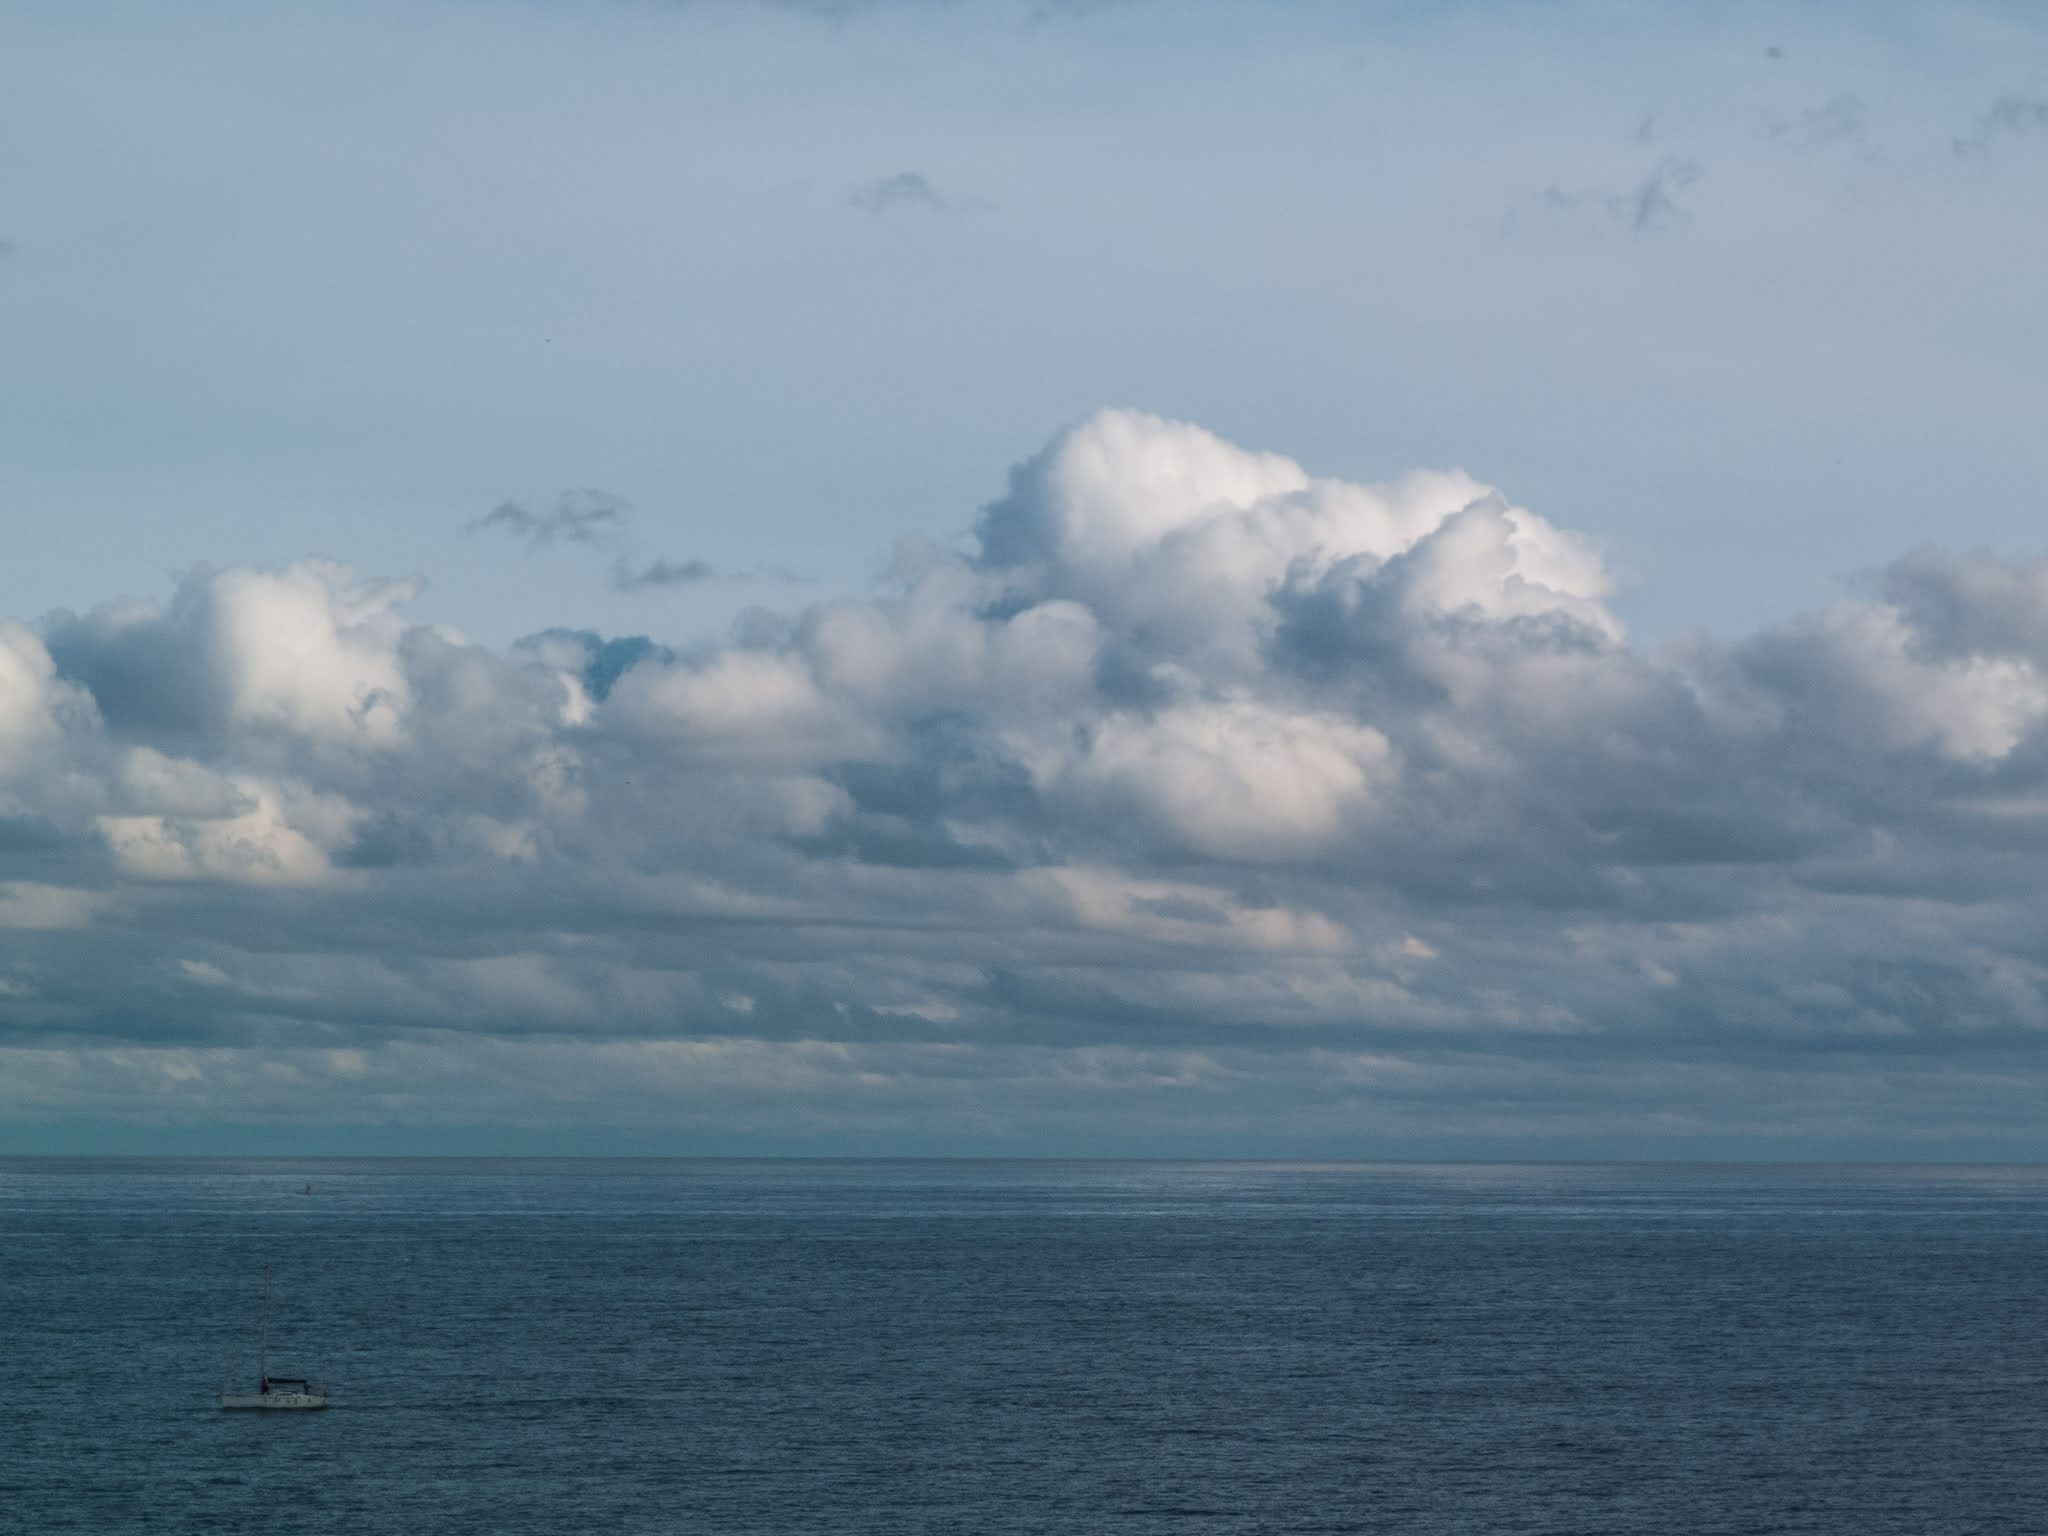 Cloudy skies and the Balearic Sea from the port of Barcelona.